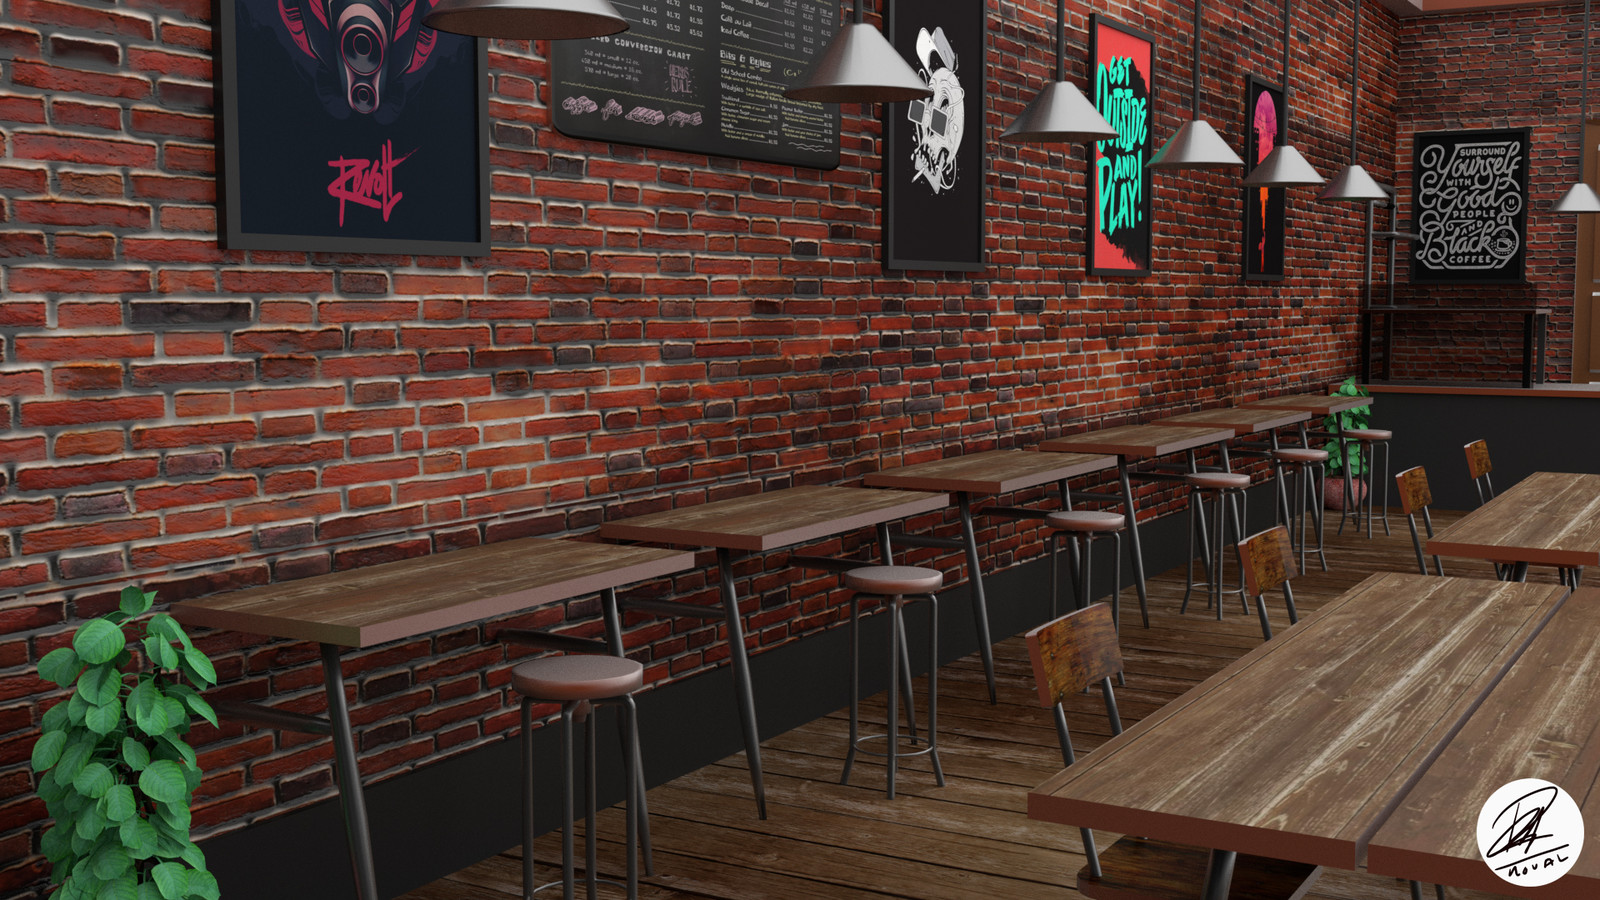 artstation - interior cafe design, mohamad imtinan nauval